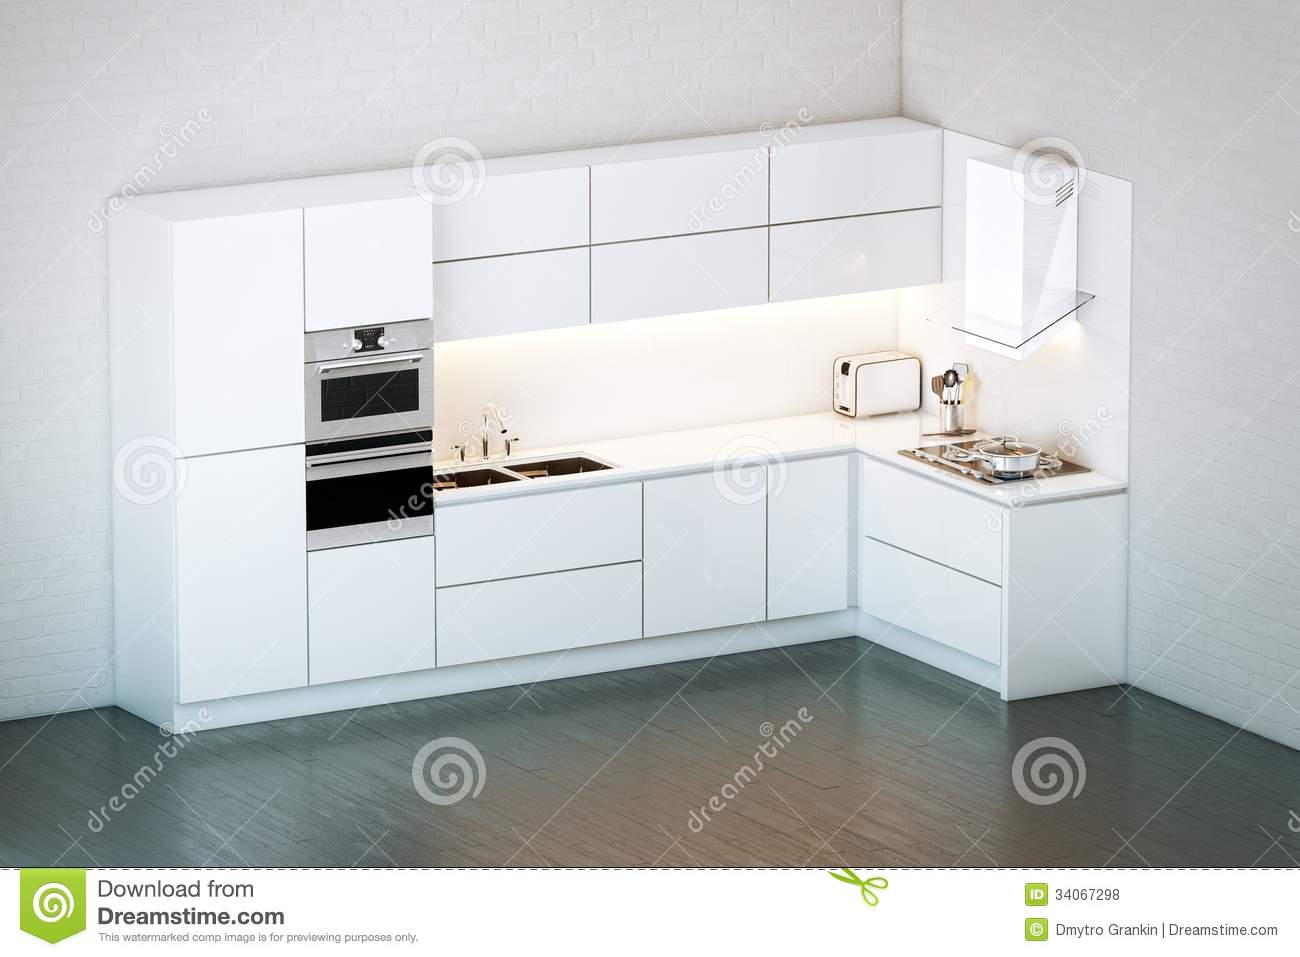 luxury white kitchen in minimalist style stock illustration image 34067298. Black Bedroom Furniture Sets. Home Design Ideas